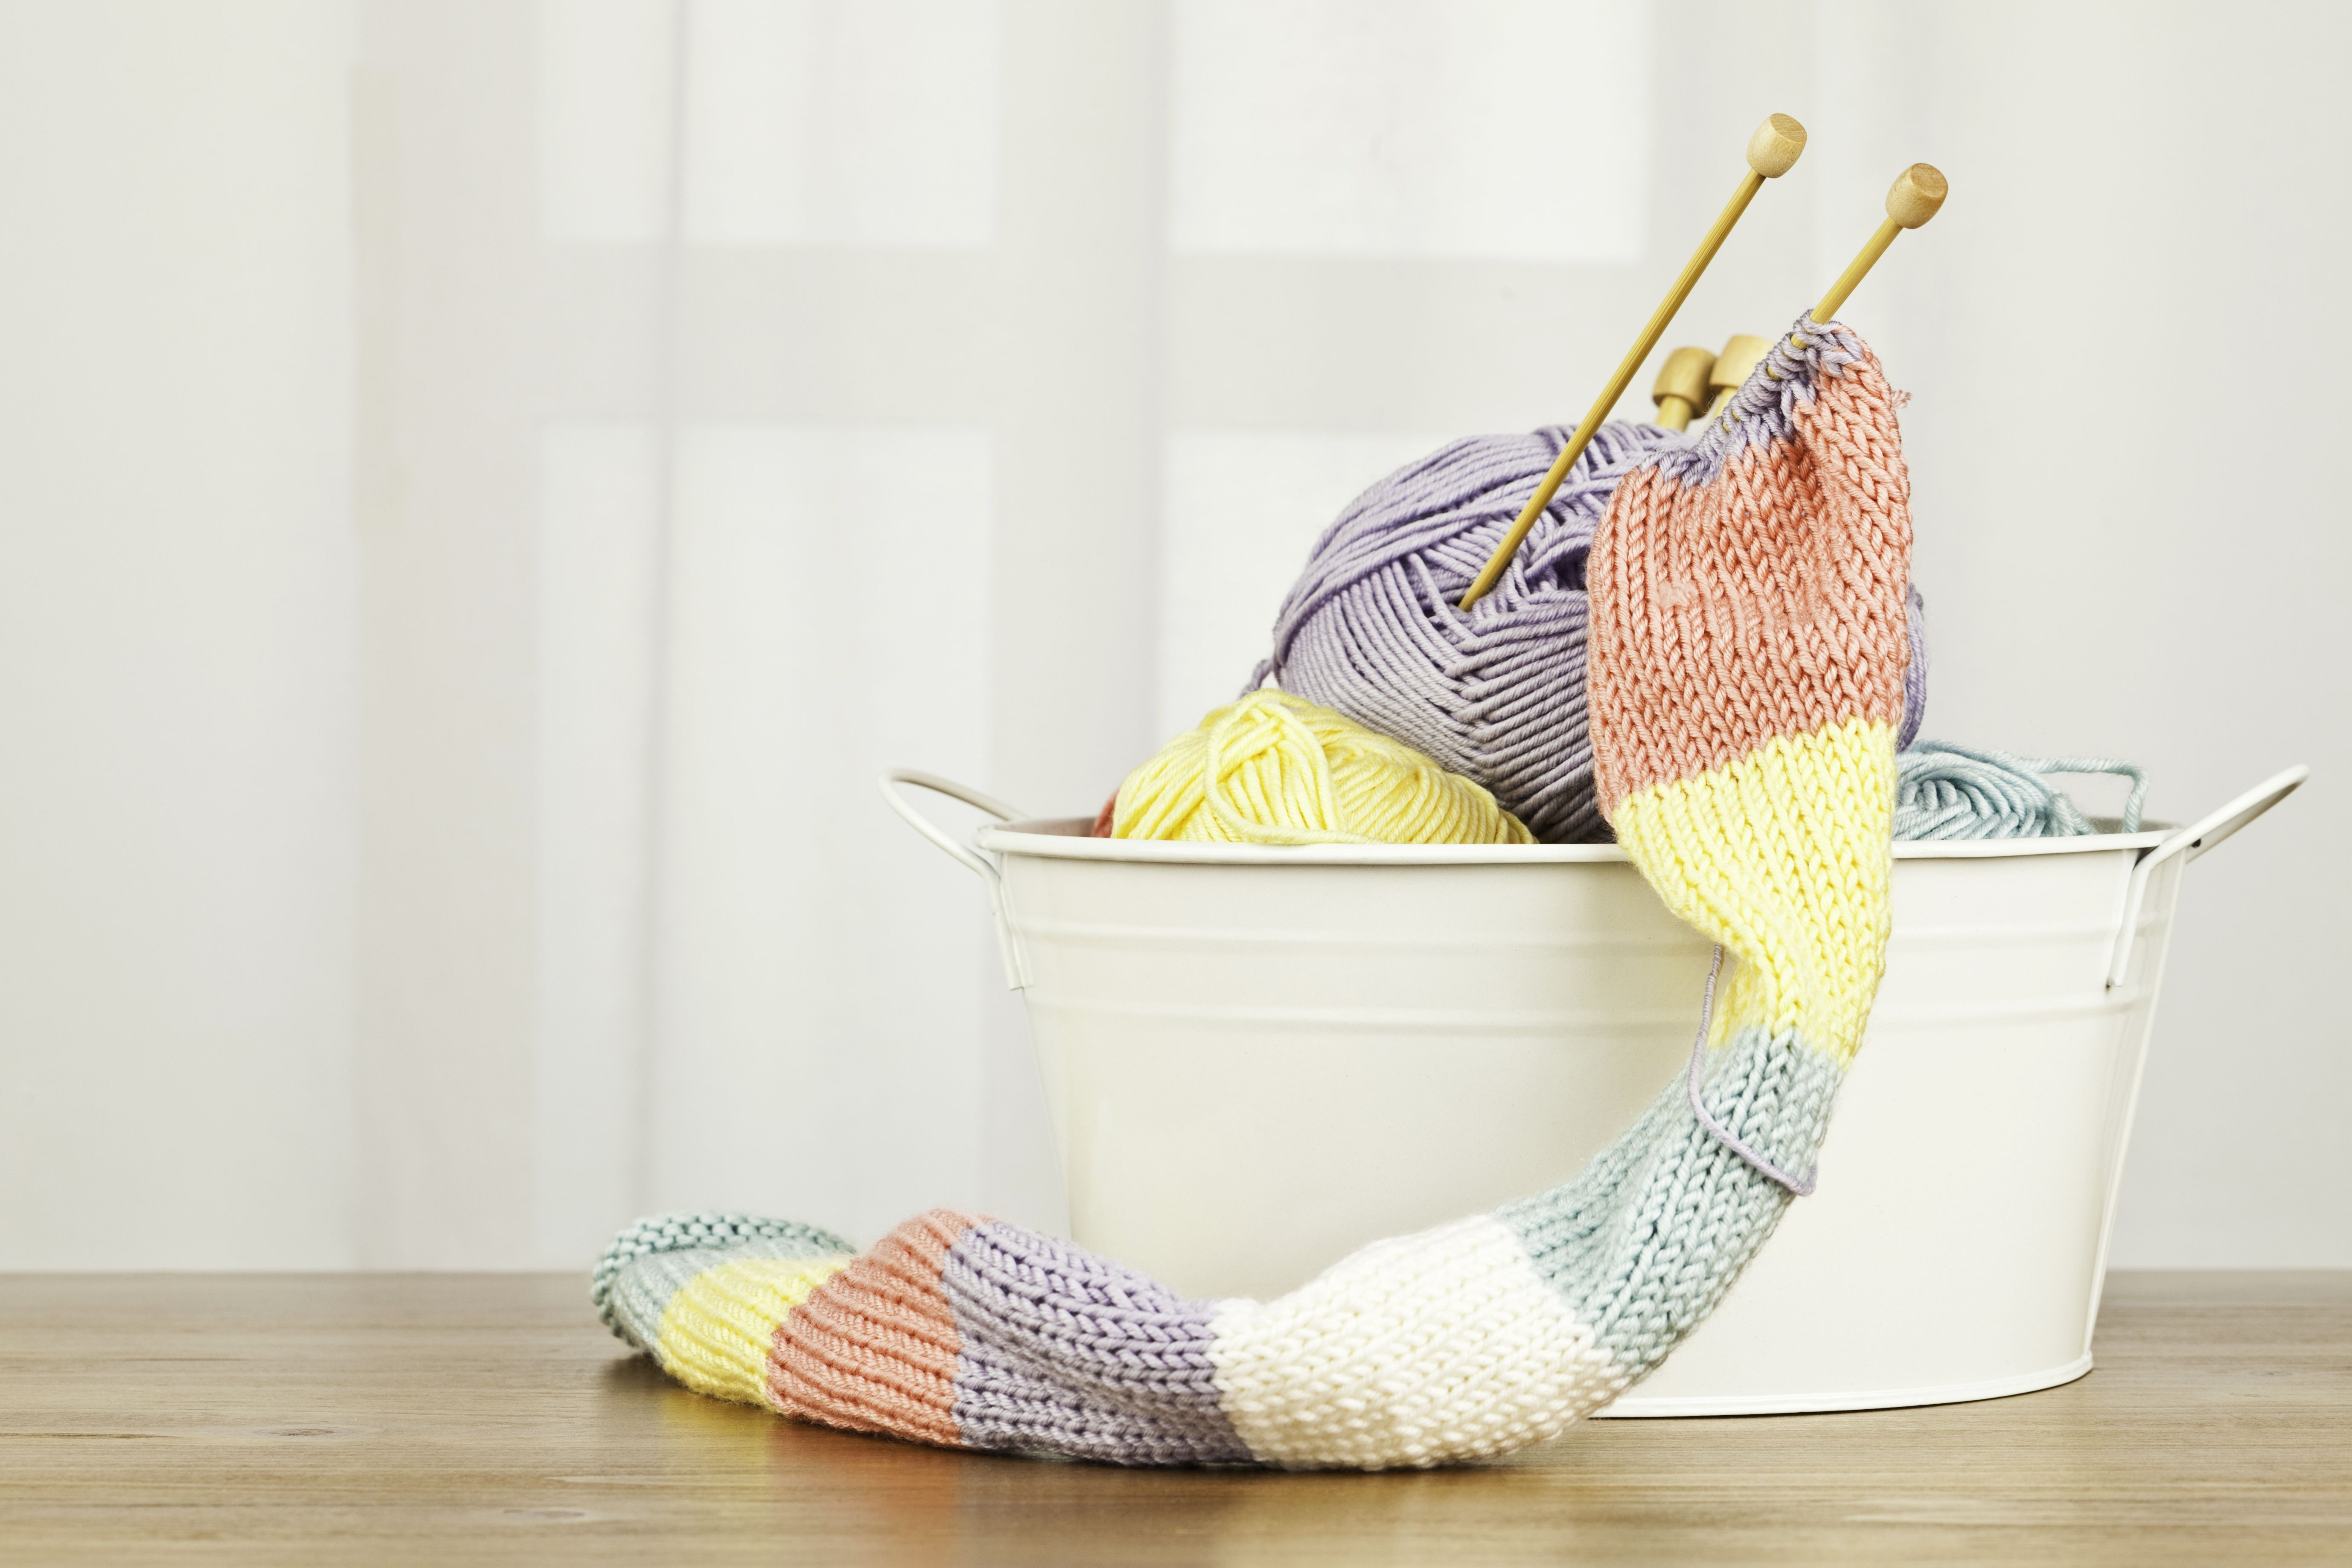 Hand-knitted scarf and yarn in a bucket.